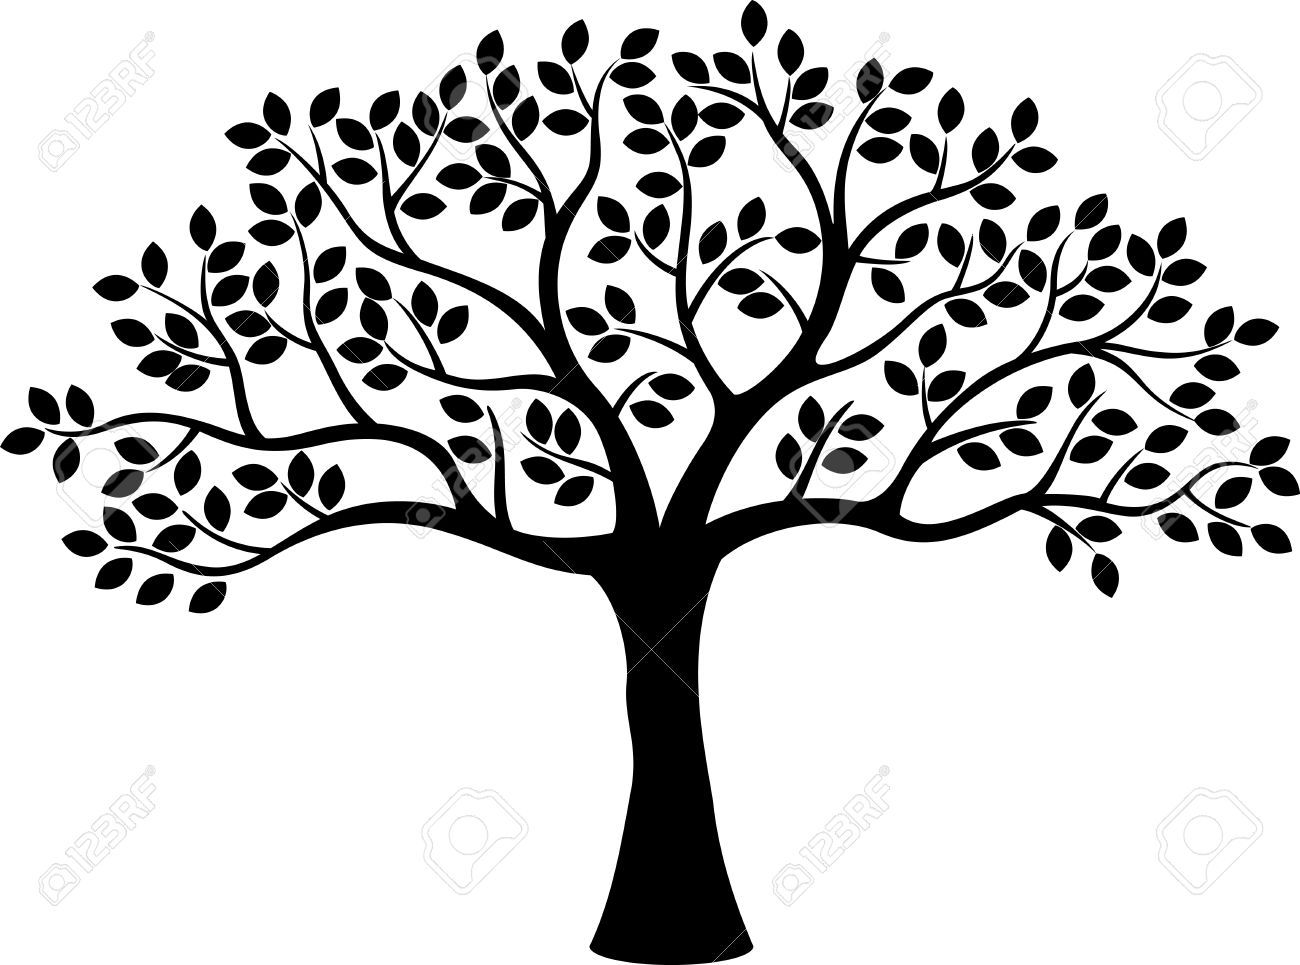 Silhouette family tree clipart black and white image royalty free Pin by Gretchen Ochs on DIY Ideas | Vector trees, Tree ... image royalty free